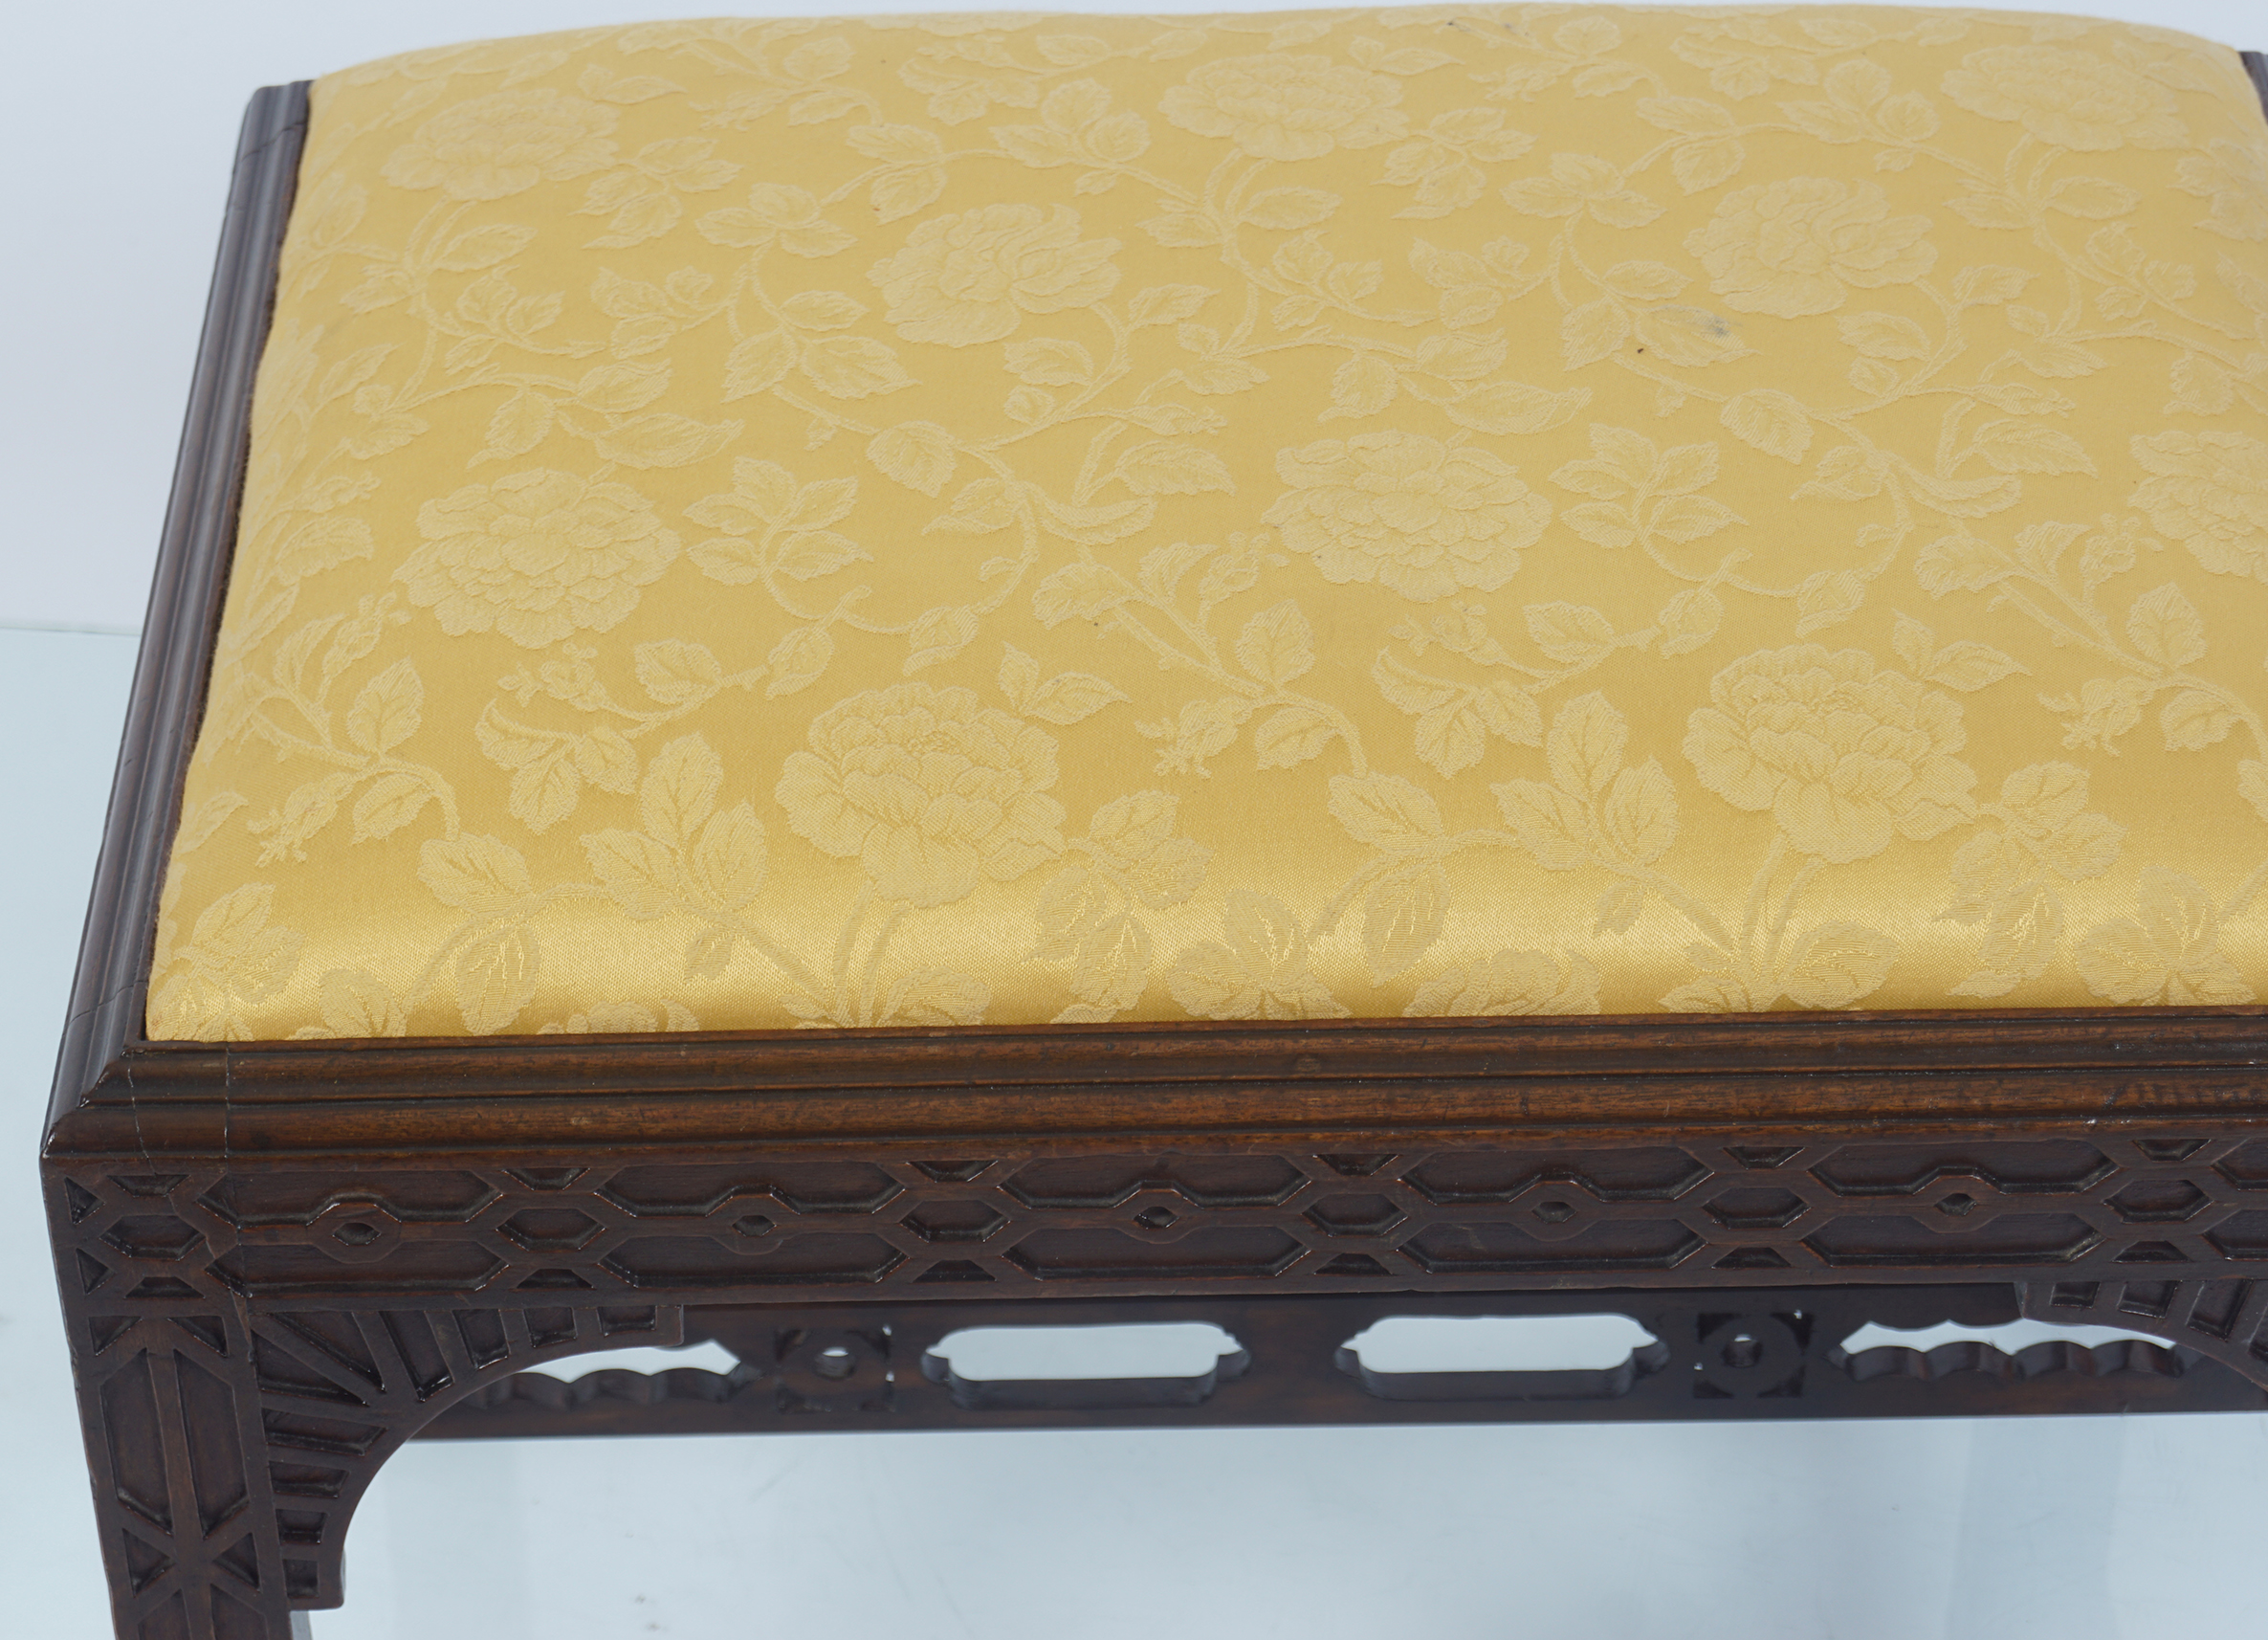 GEORGE III PERIOD MAHOGANY CHIPPENDALE STOOL - Image 3 of 3